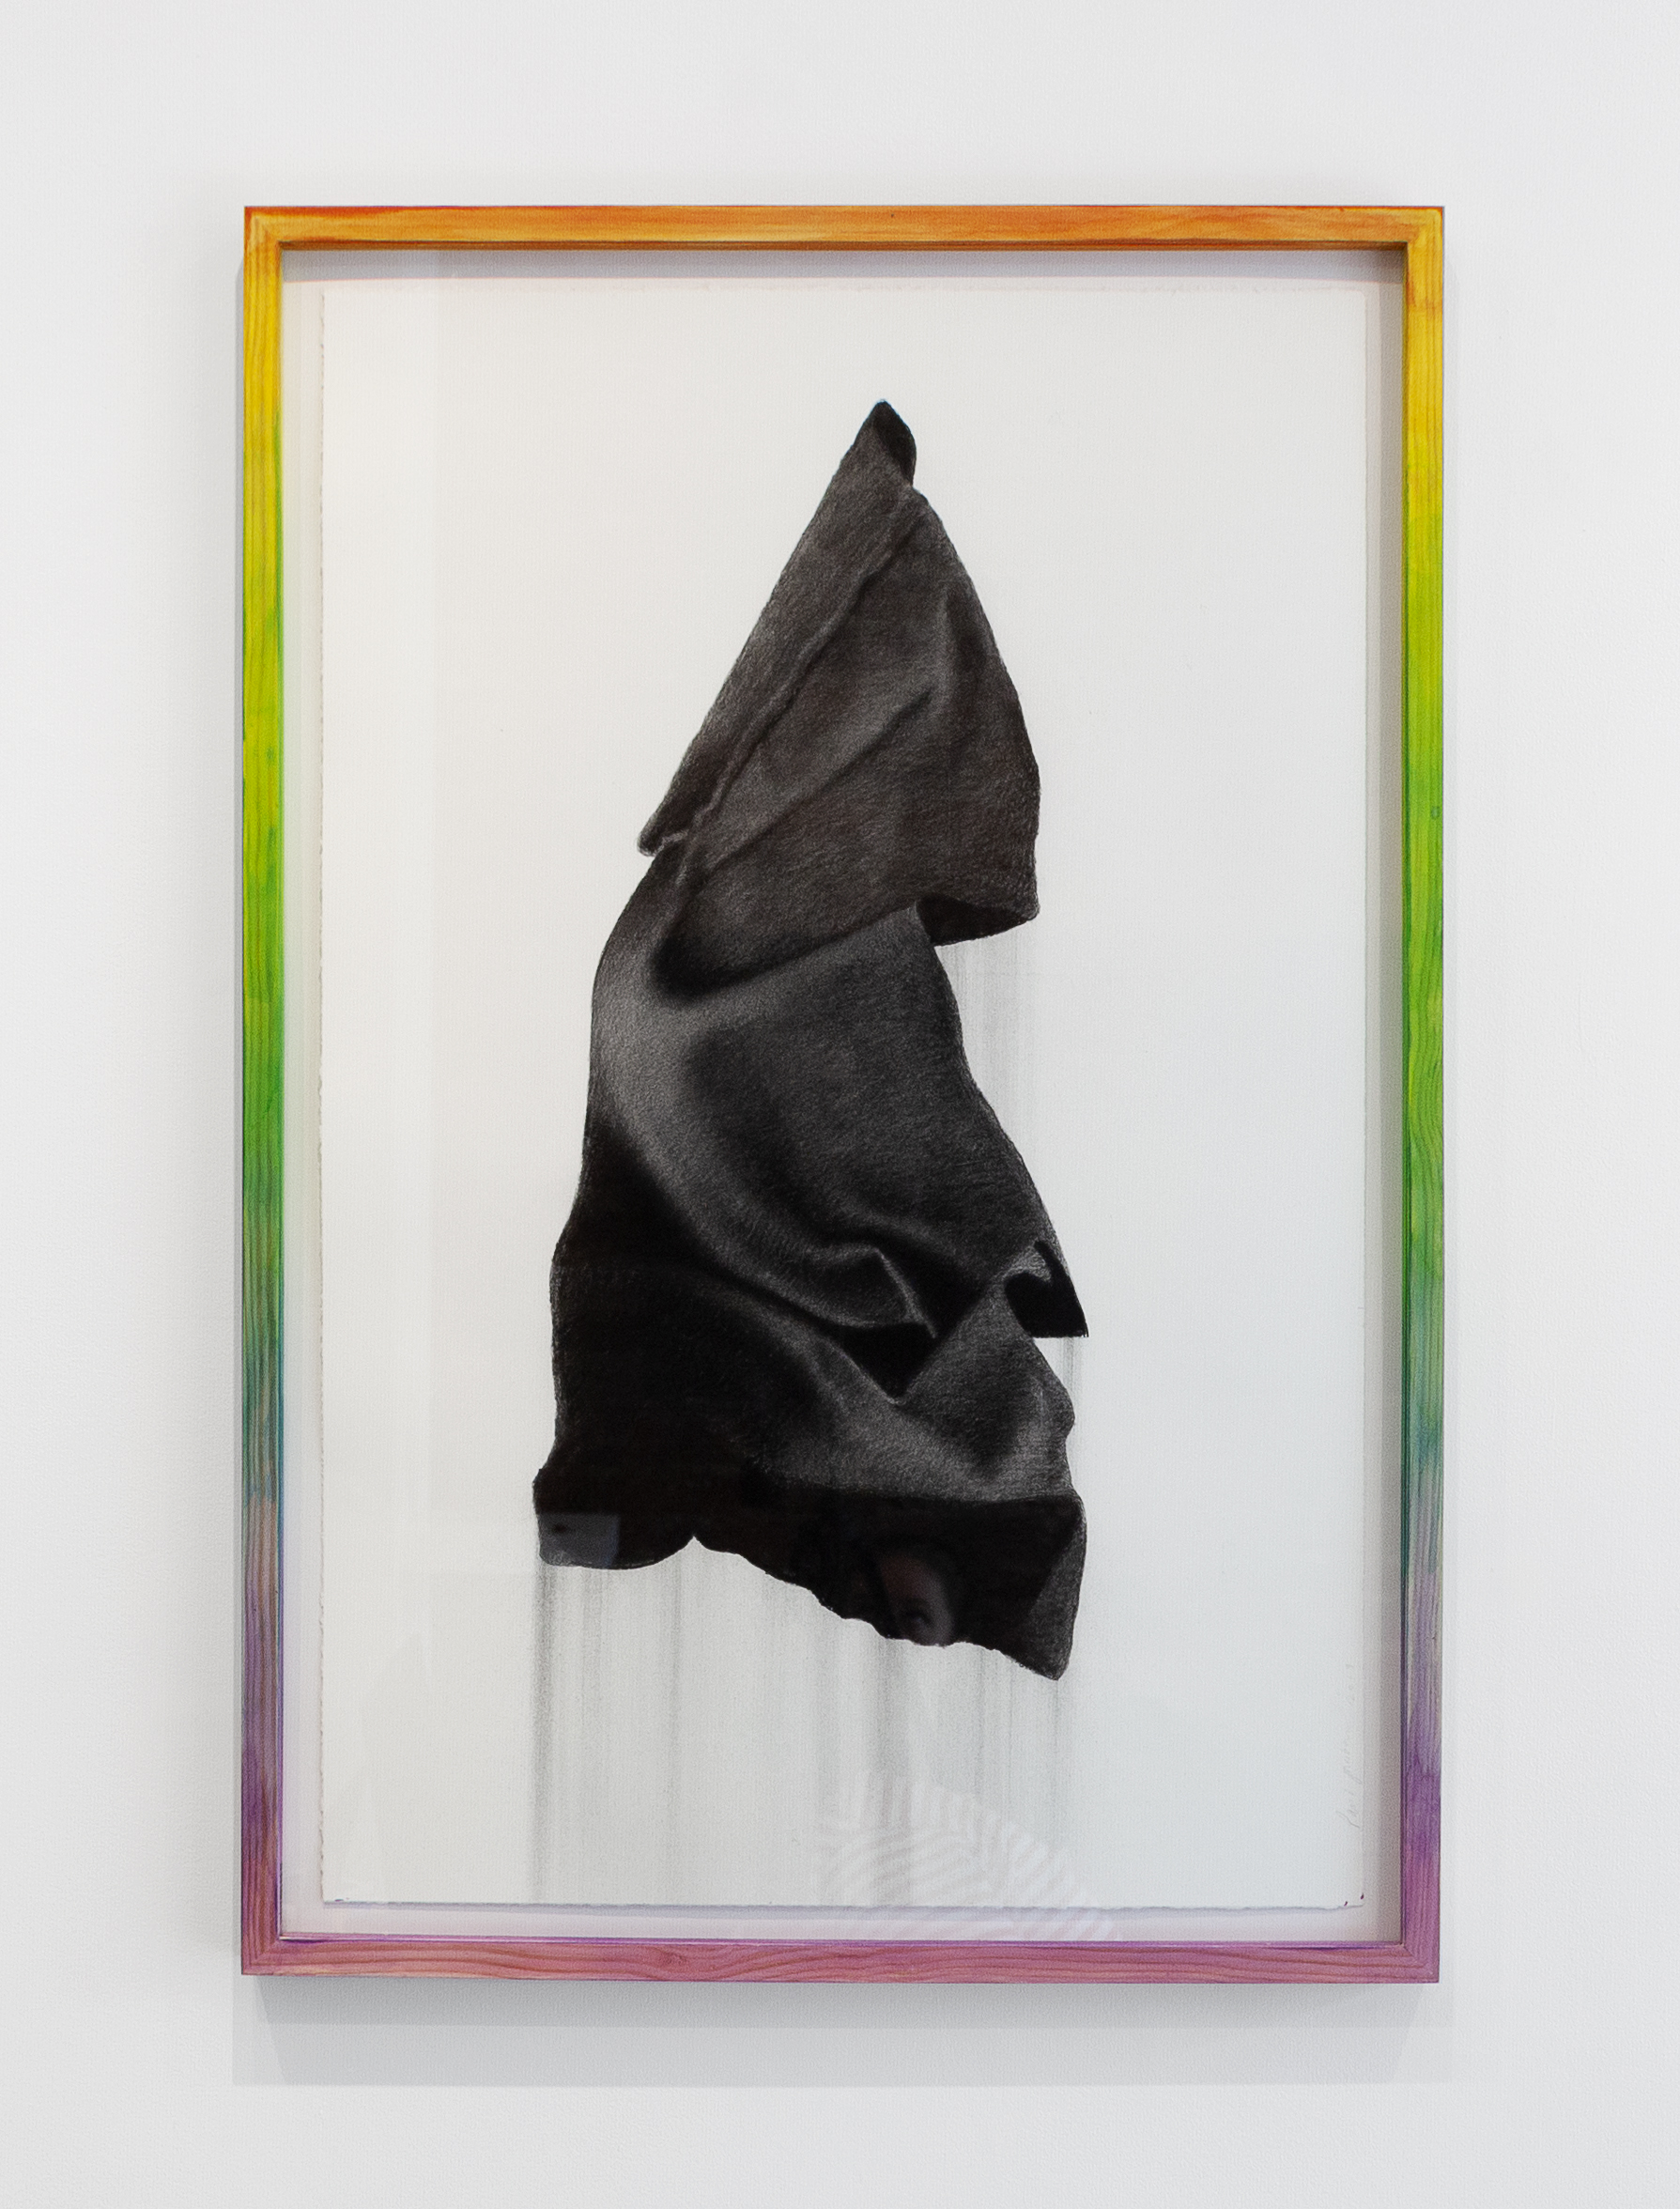 Paul Jacobsen,  Black Flag, Rainbow Frame , 2019, Charcoal on paper, hand dyed artist frame, 24 x 36 inches (60.96 x 91.44 cm)